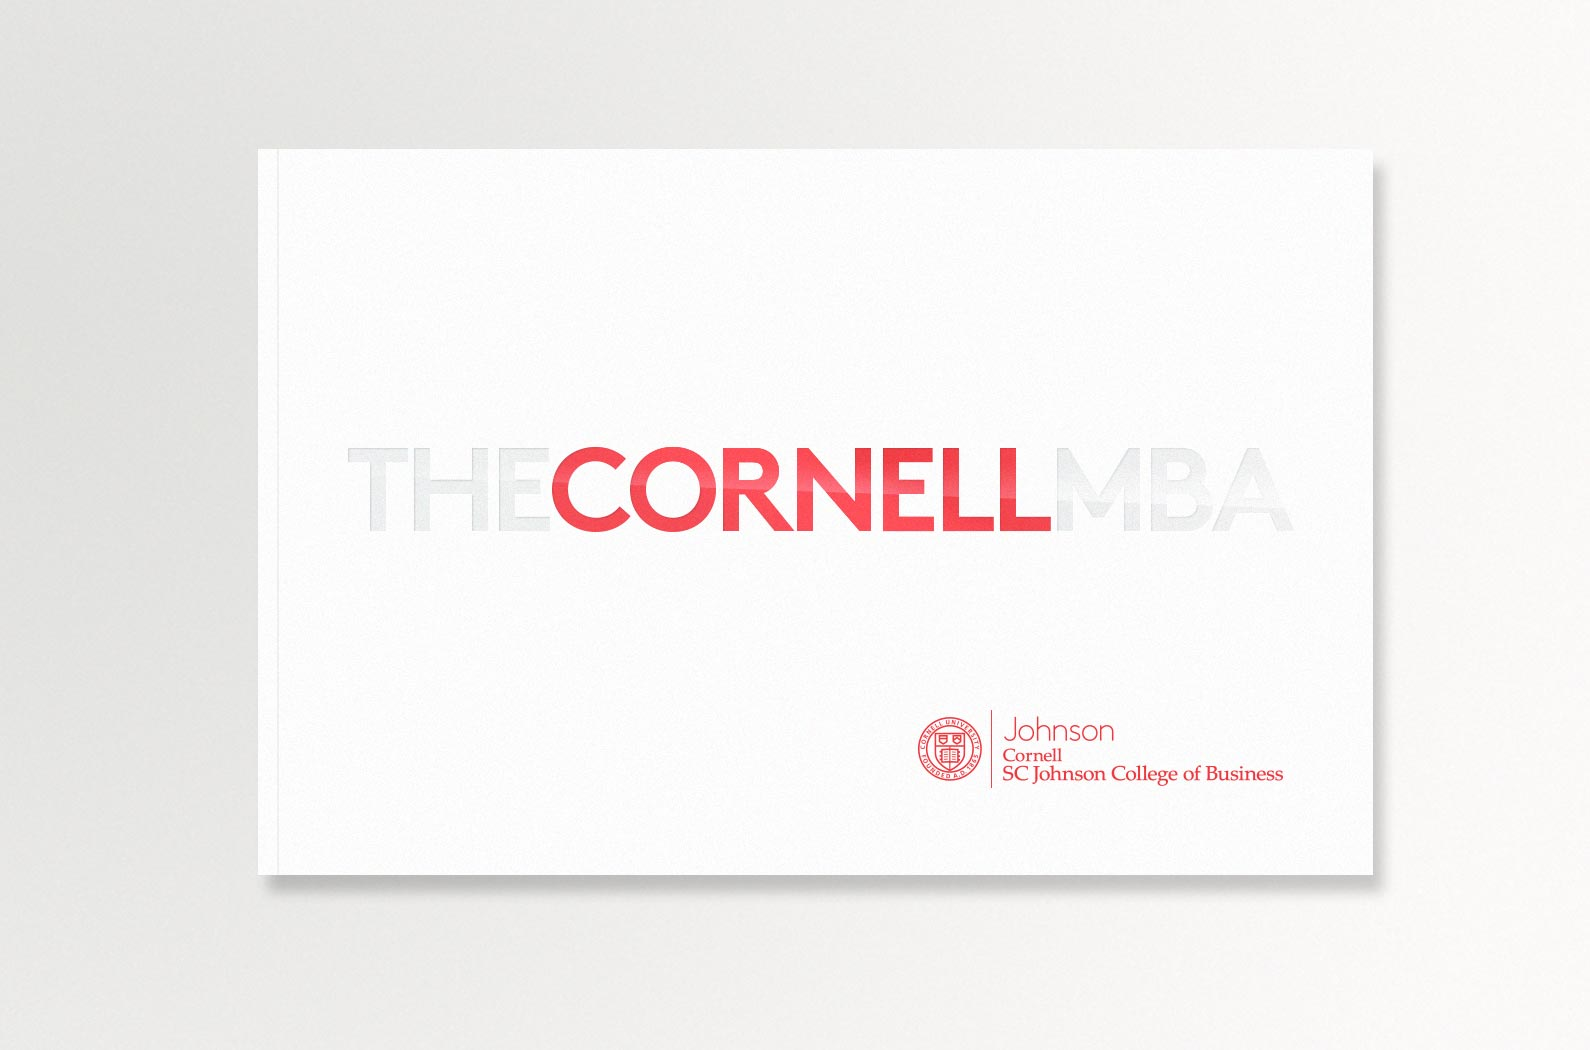 The Cornell MBA Viewbook Cover